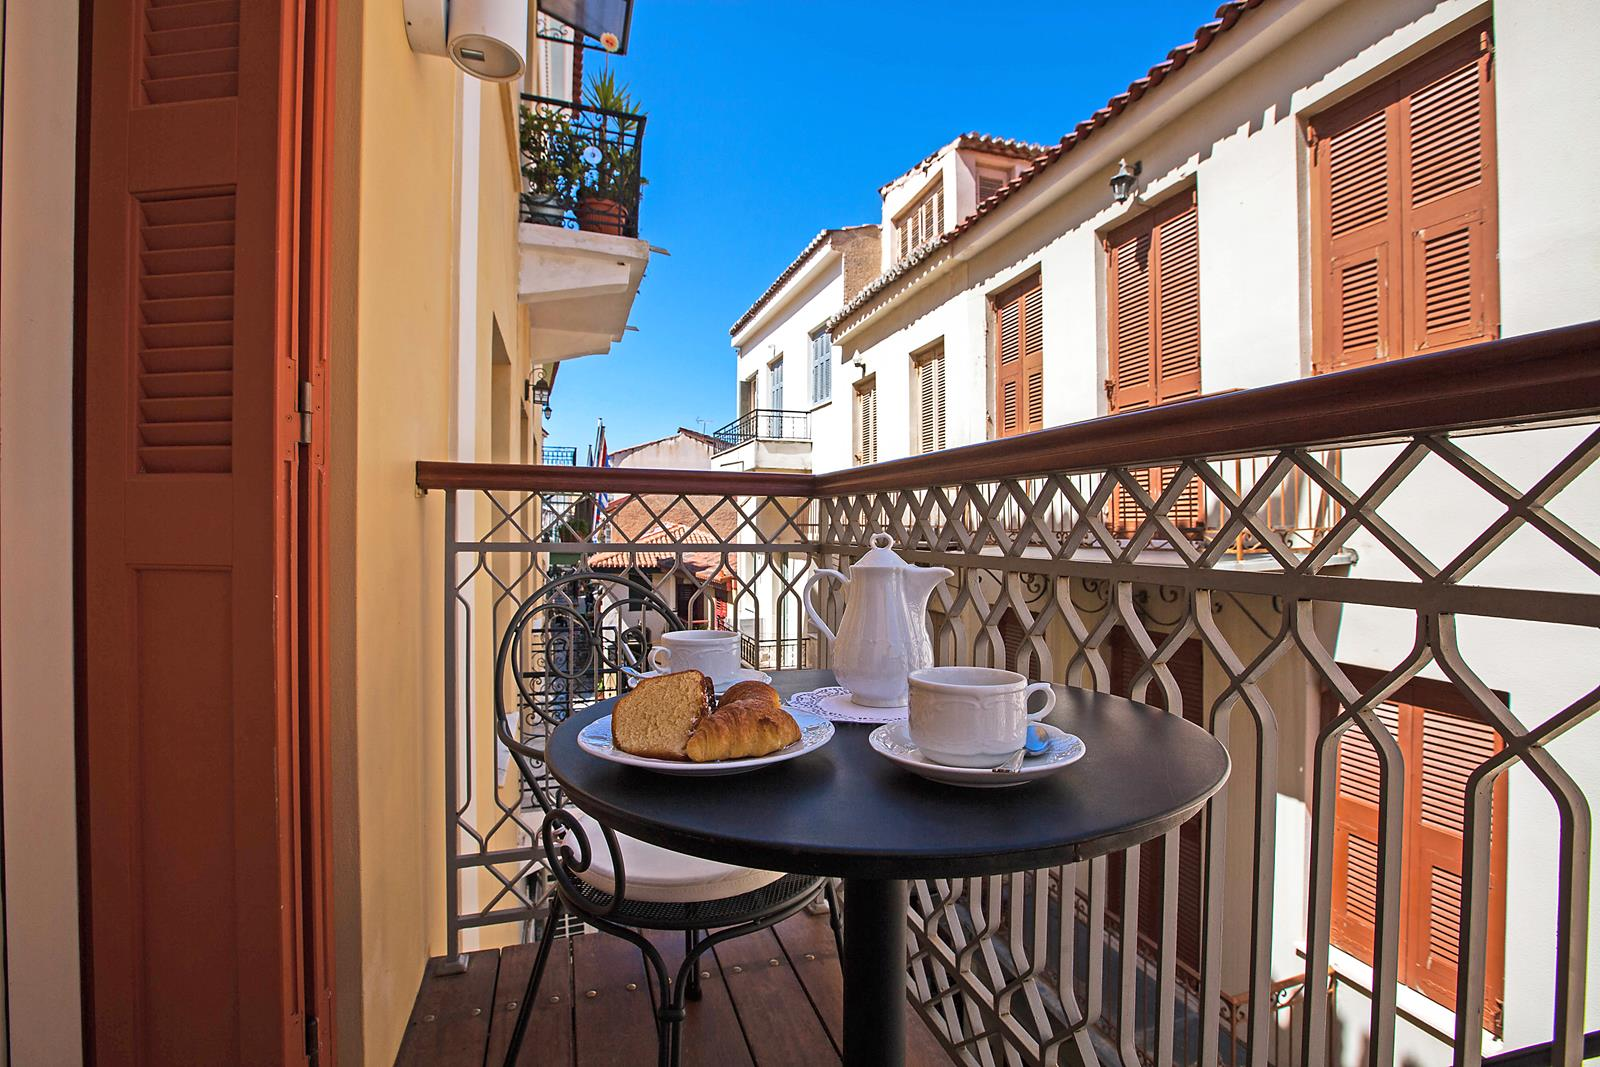 accommodation nafplio greece - Aetoma hotel